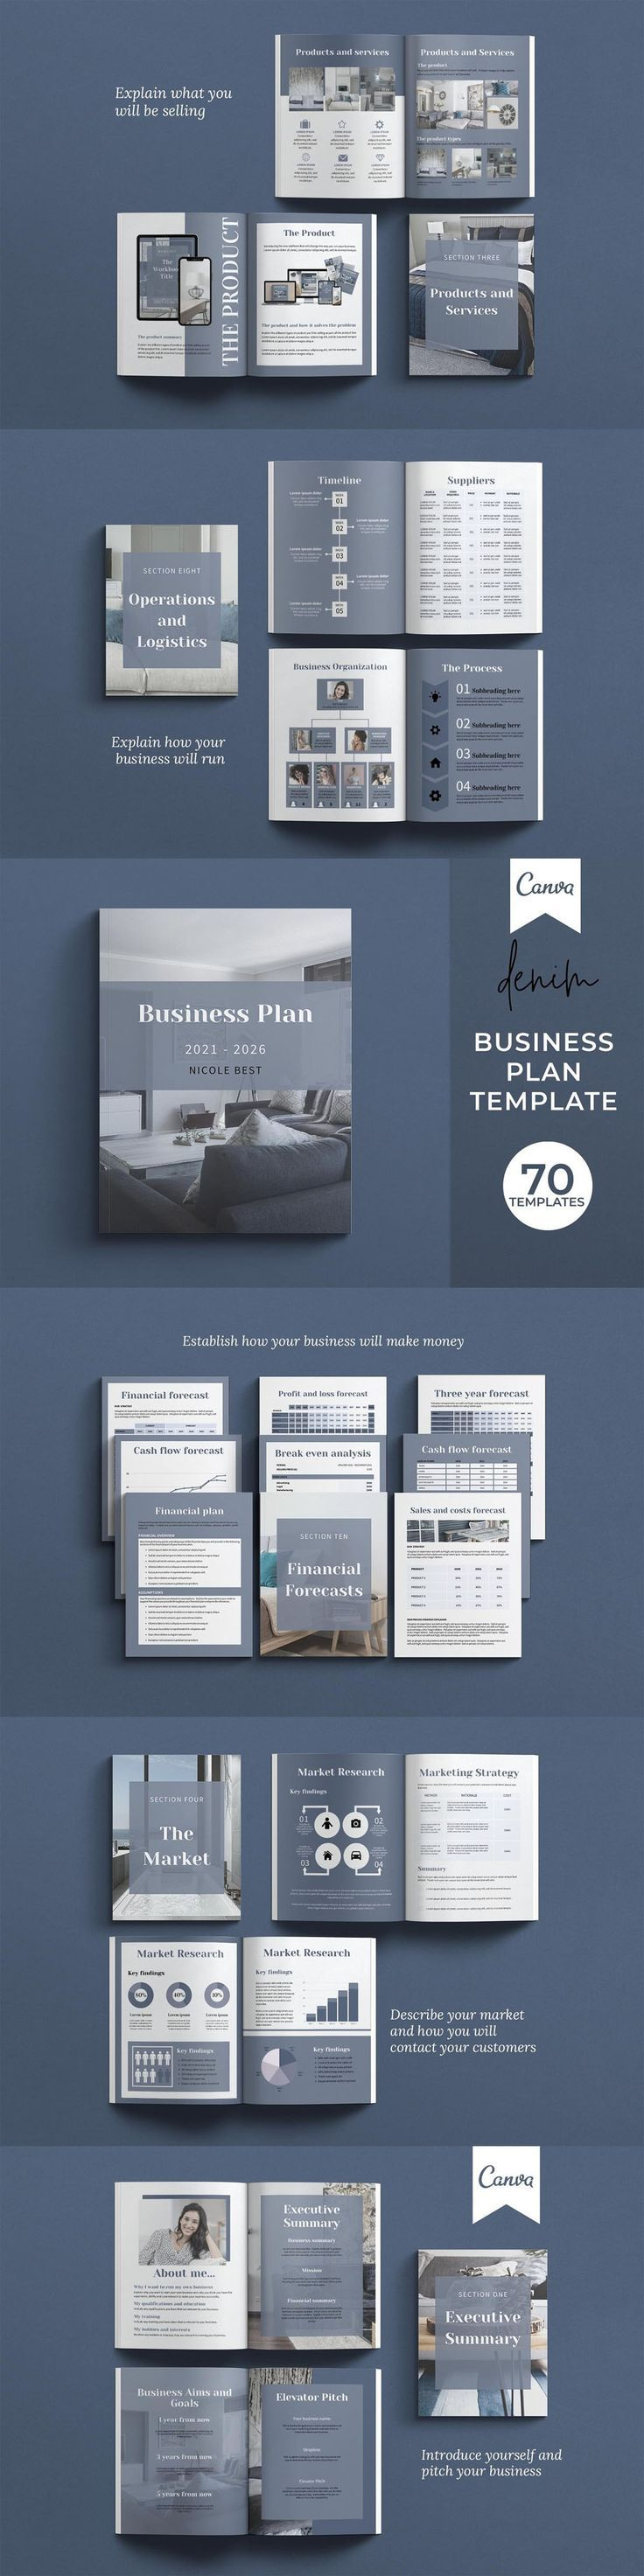 Canva Template Business Plan / 70 Pages. File Size: 3.1 MB. Layered. 70-page Canva Small Business Plan Template in both A4 and Letter sizes.. 3 front covers